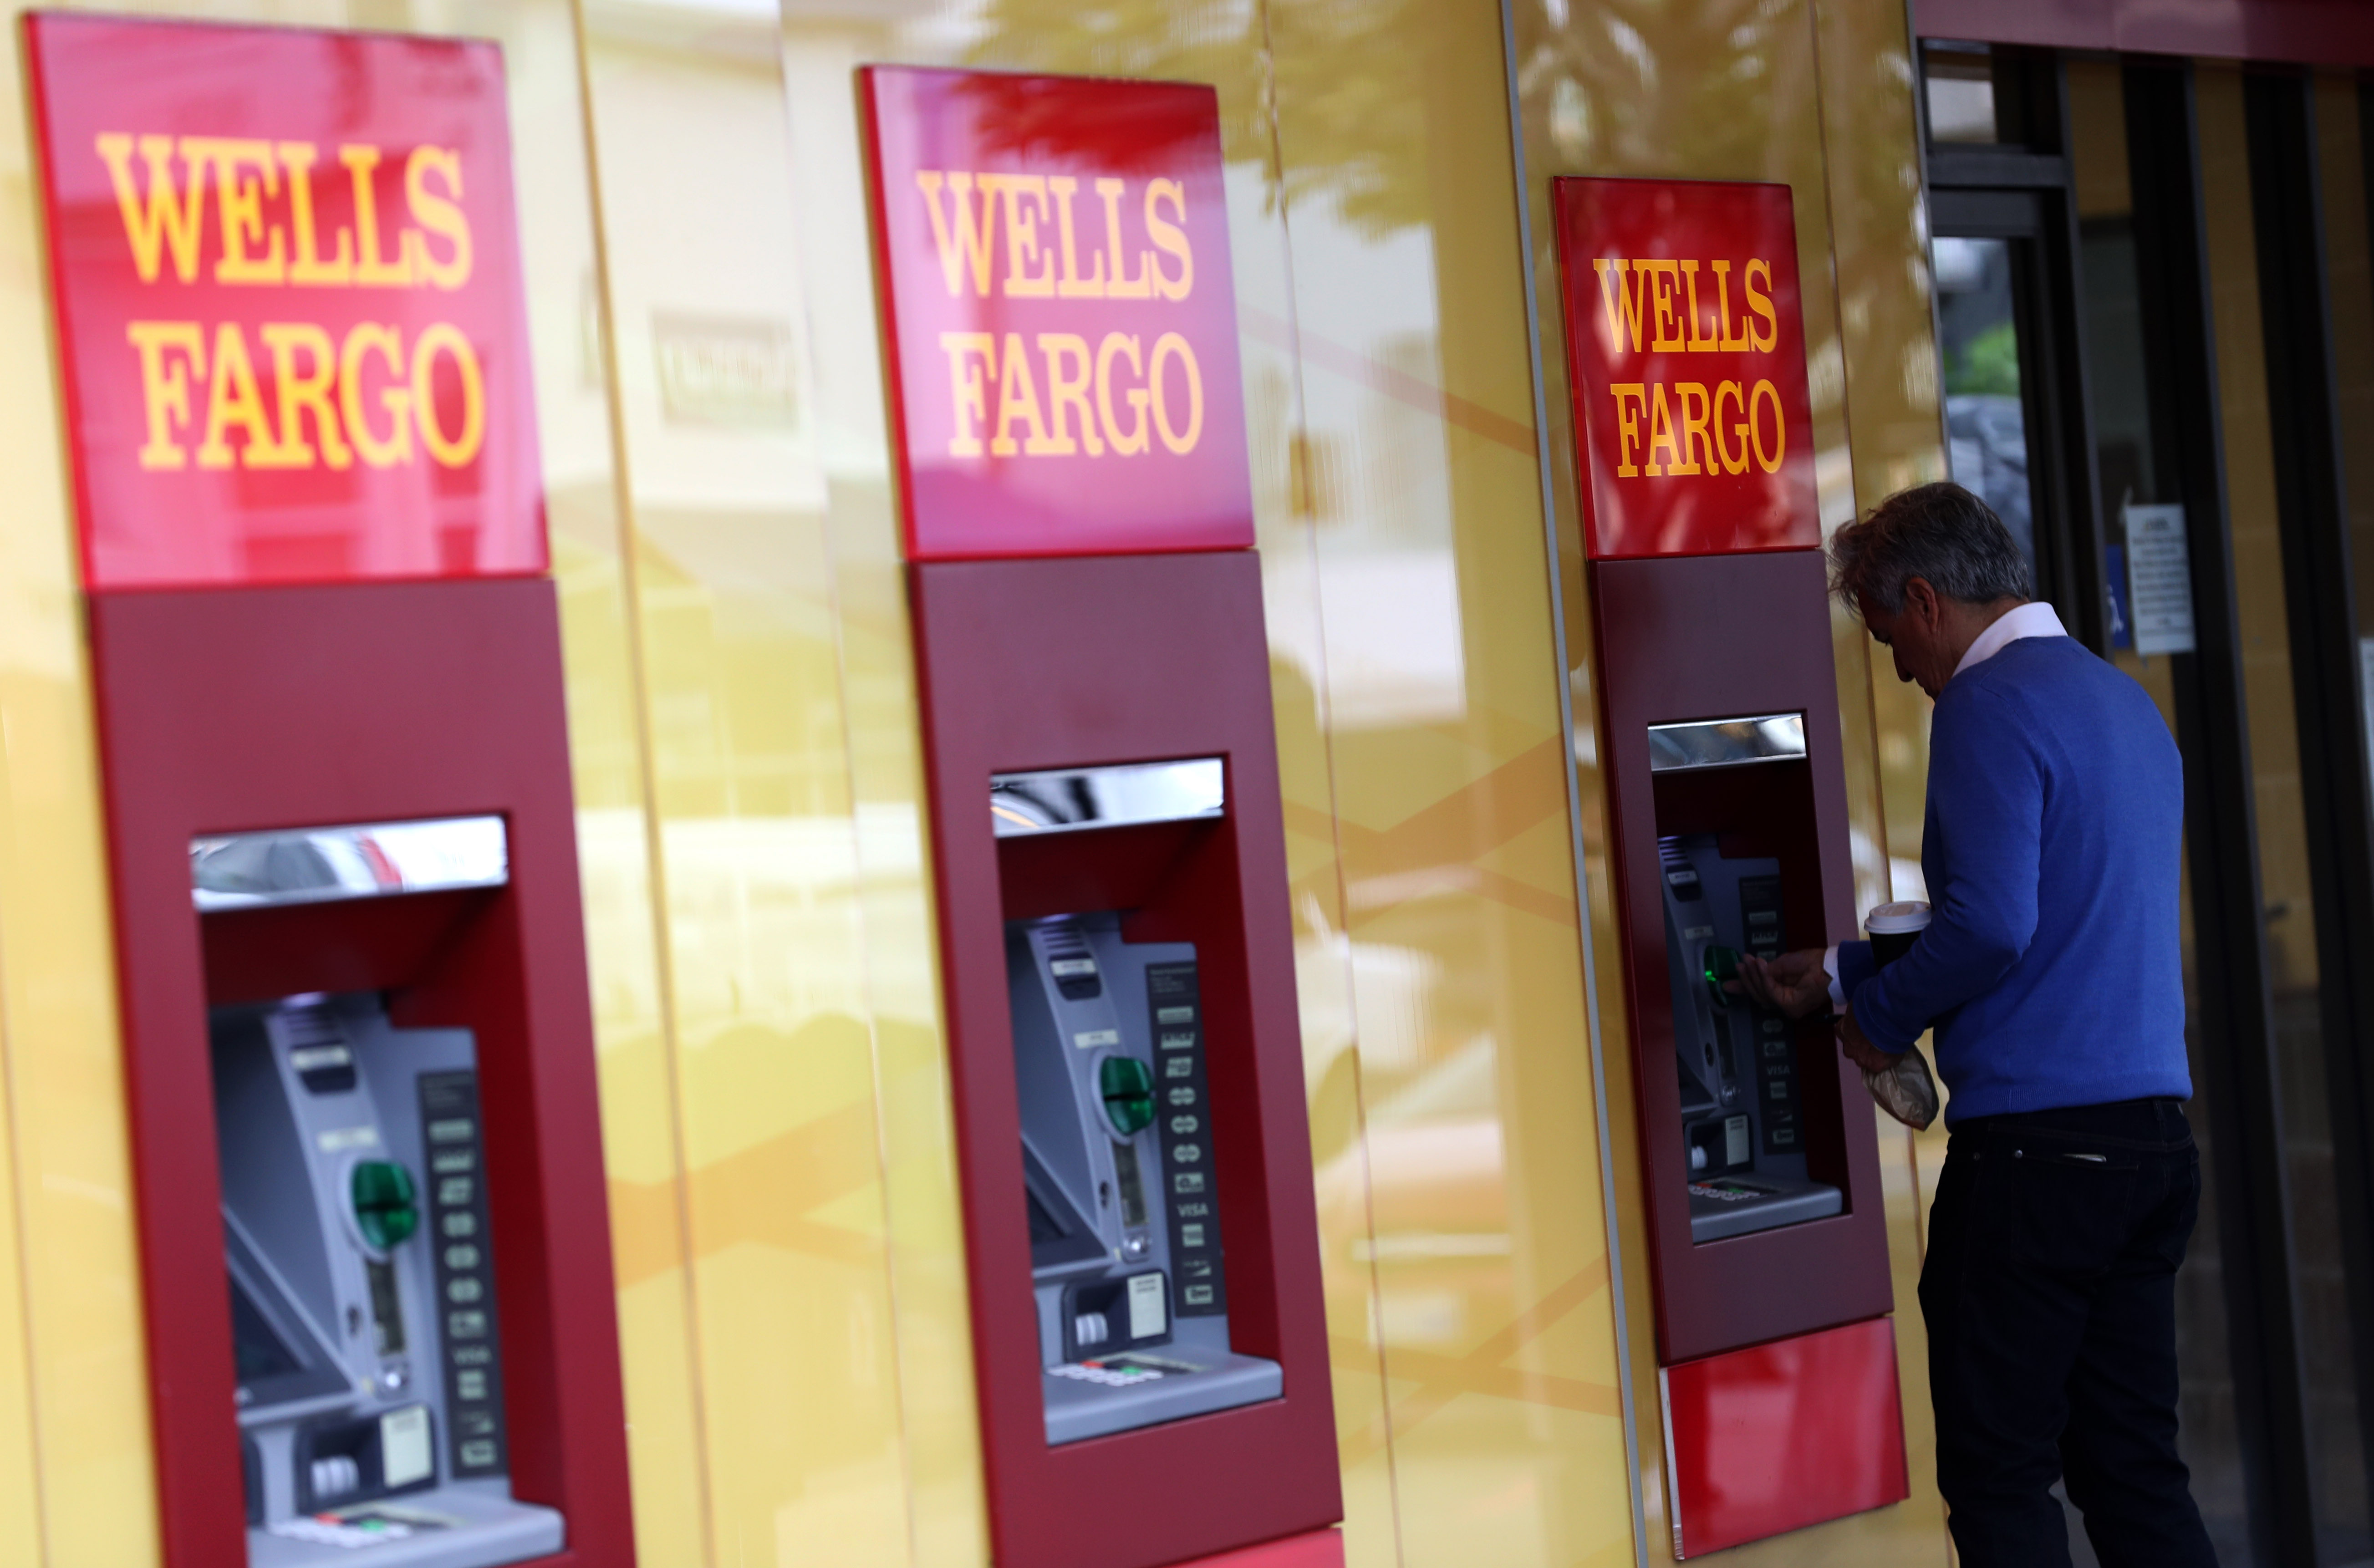 Wells Fargo workers worry the bank still has unethical business practices